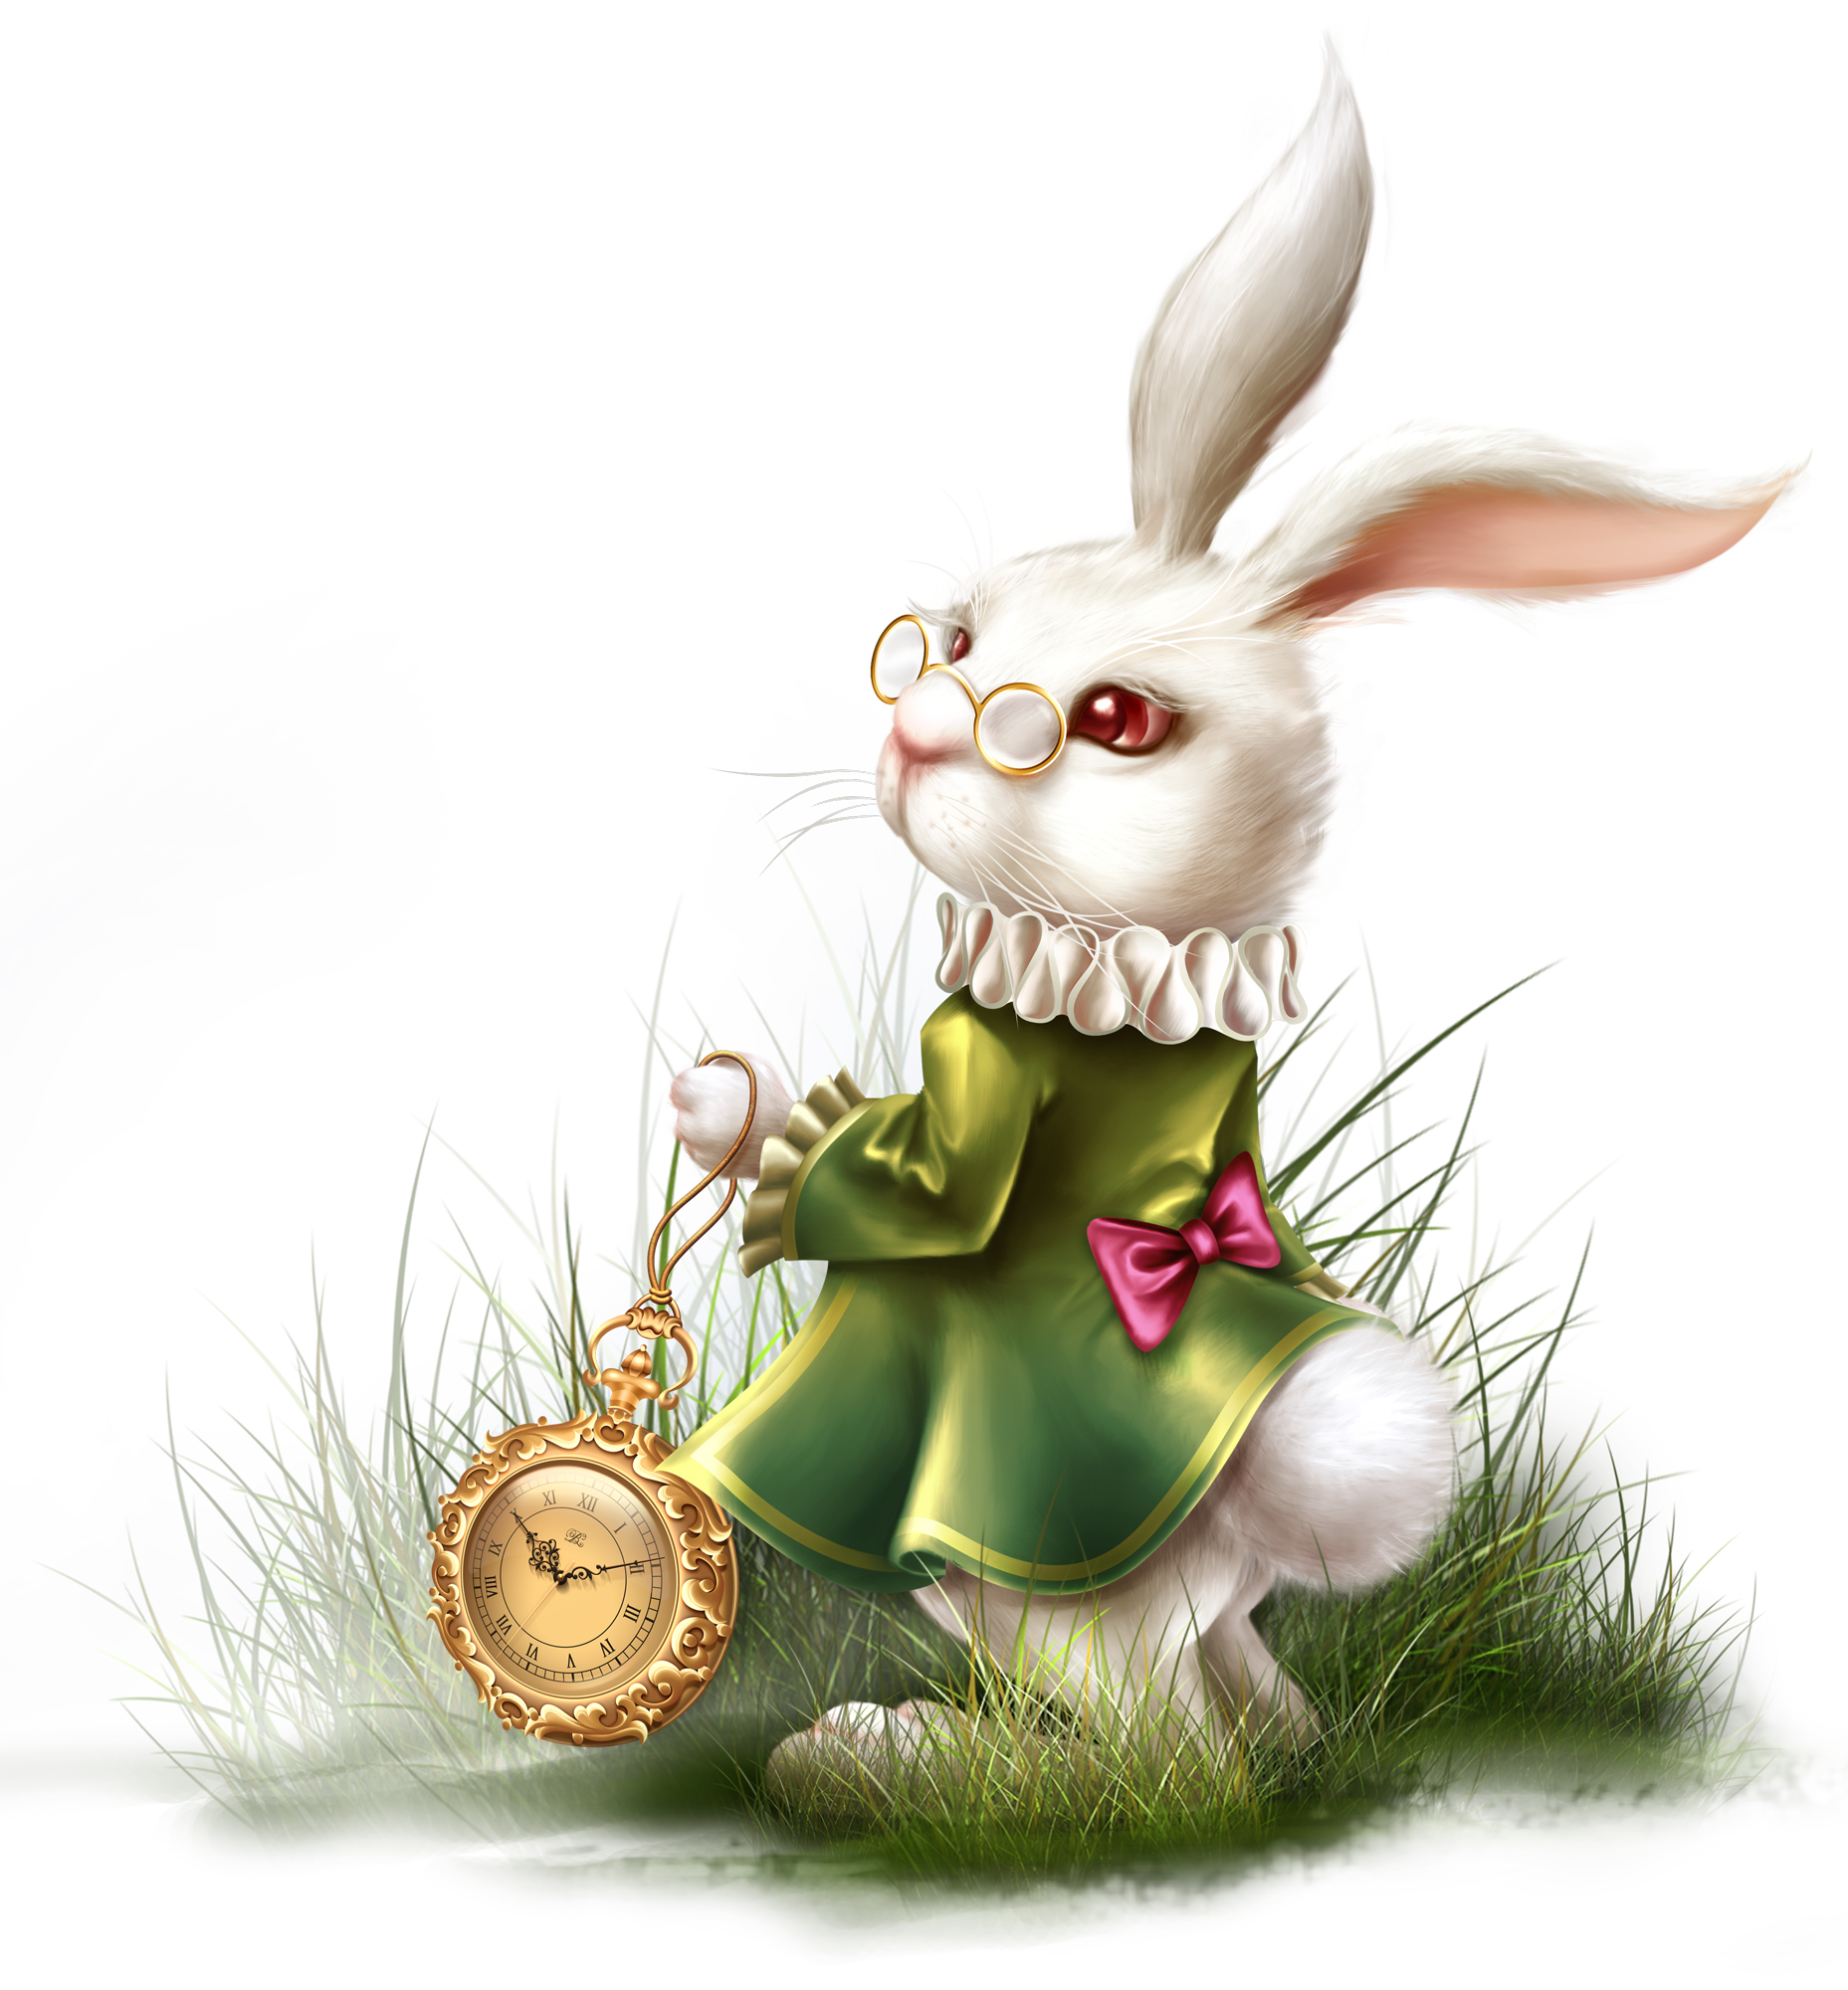 Rabbit reading book clipart graphic royalty free stock Pin by Lidia on Moonbeam 1212, Jaguarwomen - png | Pinterest graphic royalty free stock